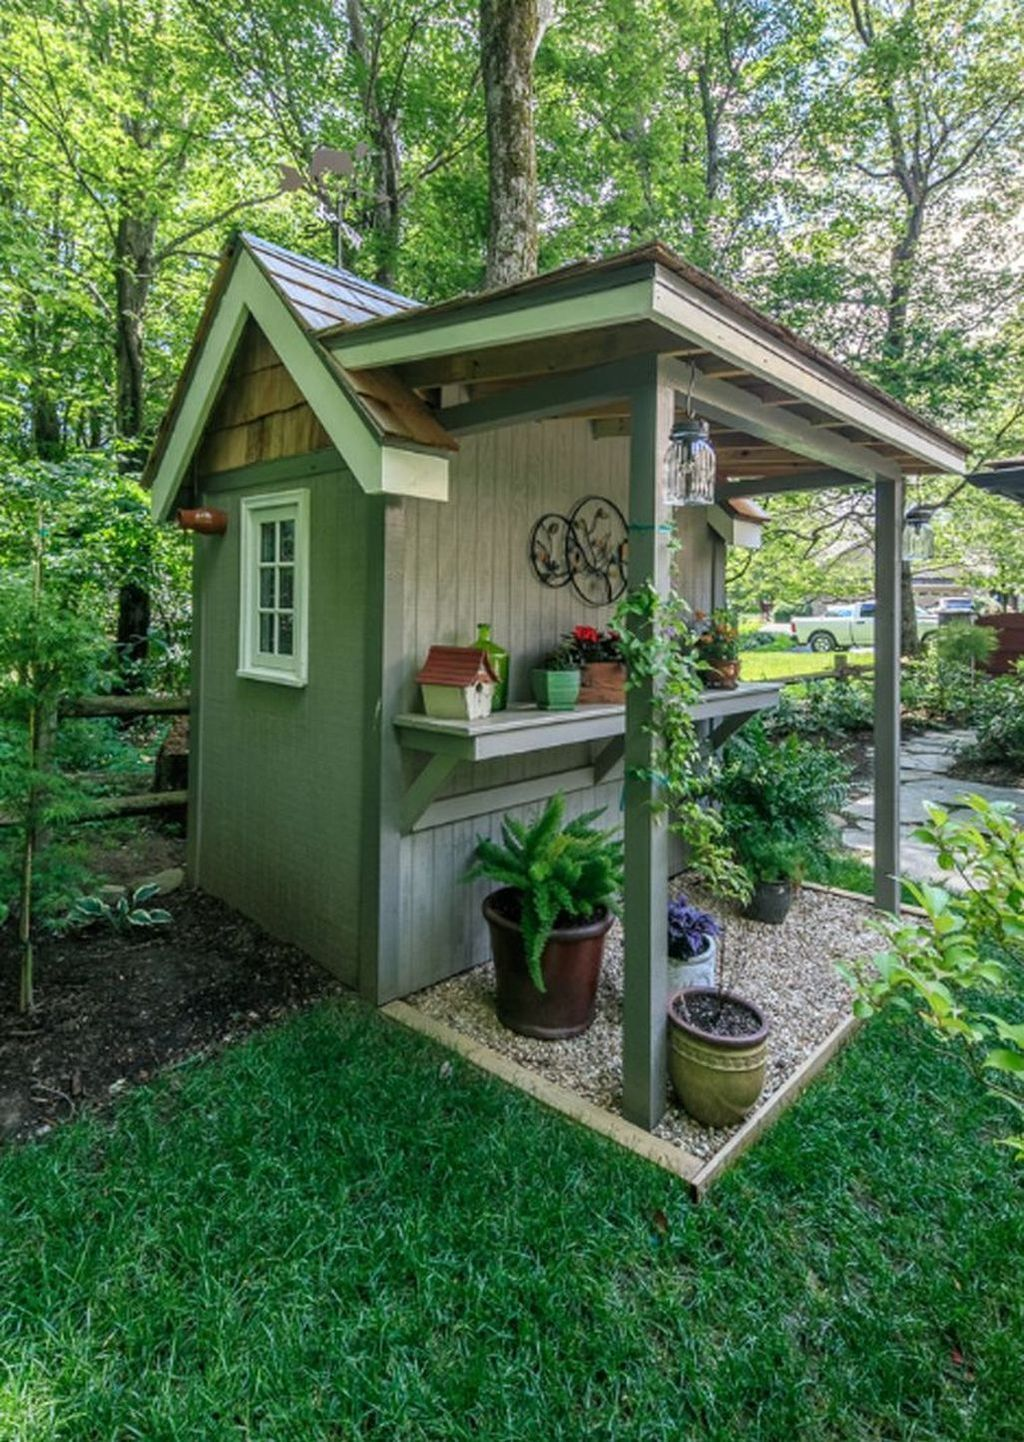 30 Brilliant Garden Design Ideas For Front Your House Trenduhome Small Patio Design Backyard Sheds Backyard Landscaping Backyard landscaping ideas with sheds